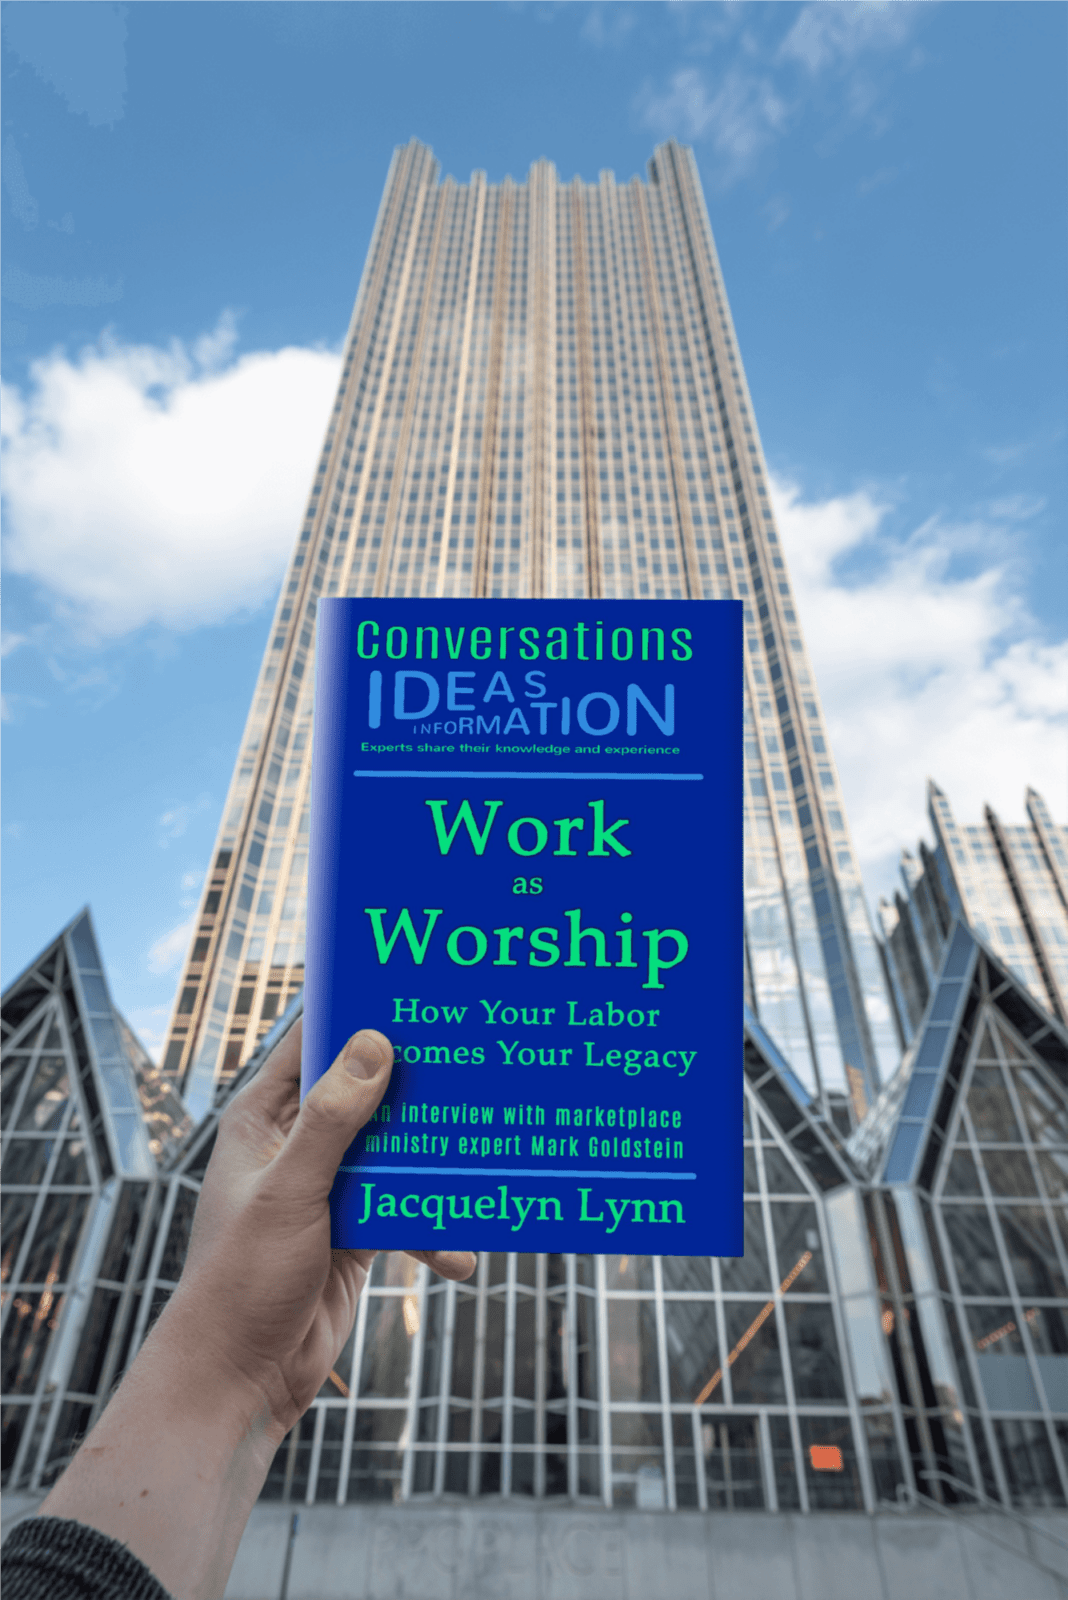 Work as Worship (book) in front of a building